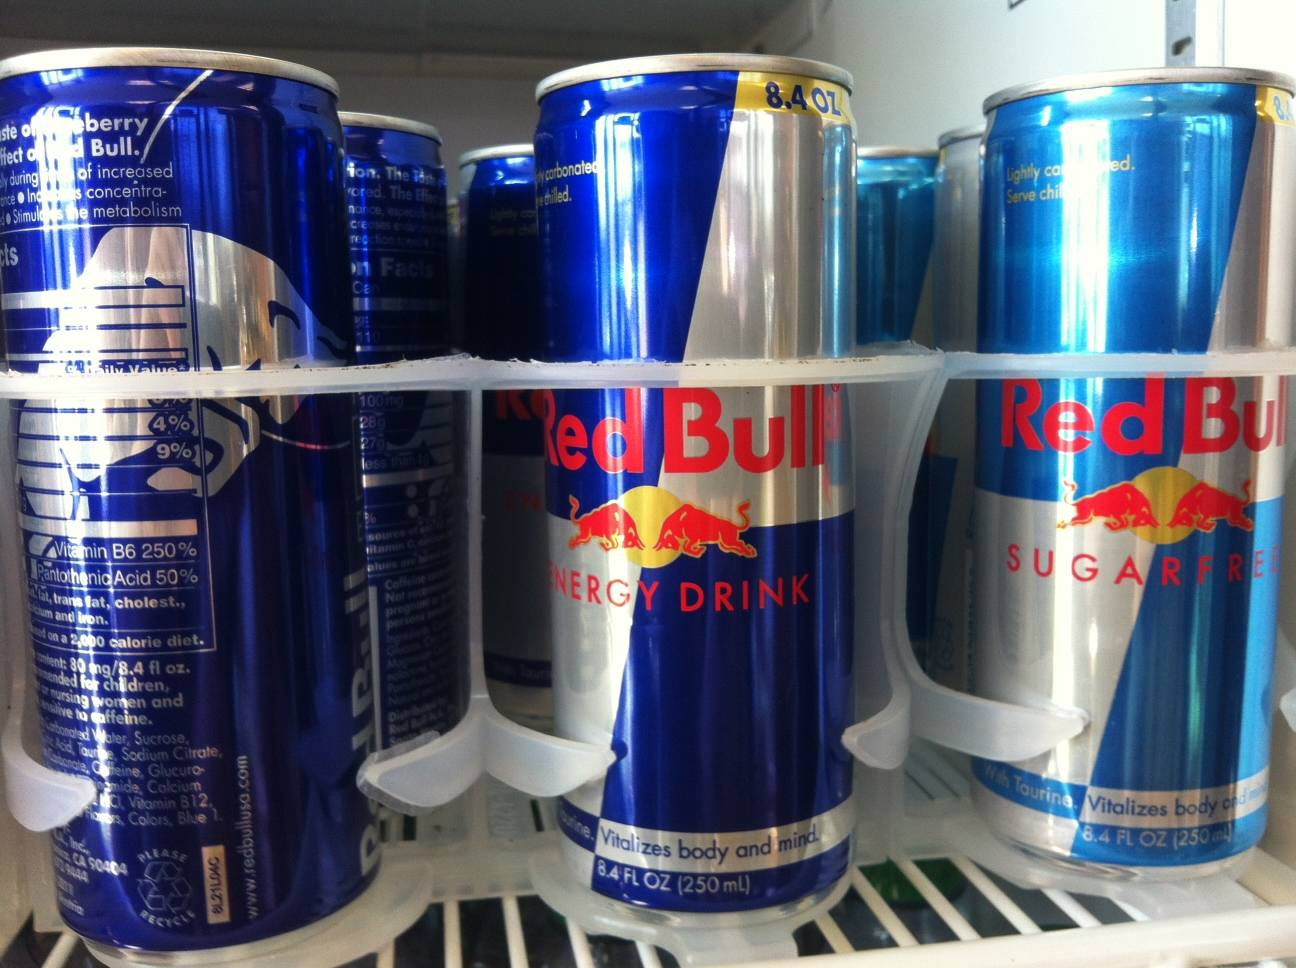 energy drink and red bull